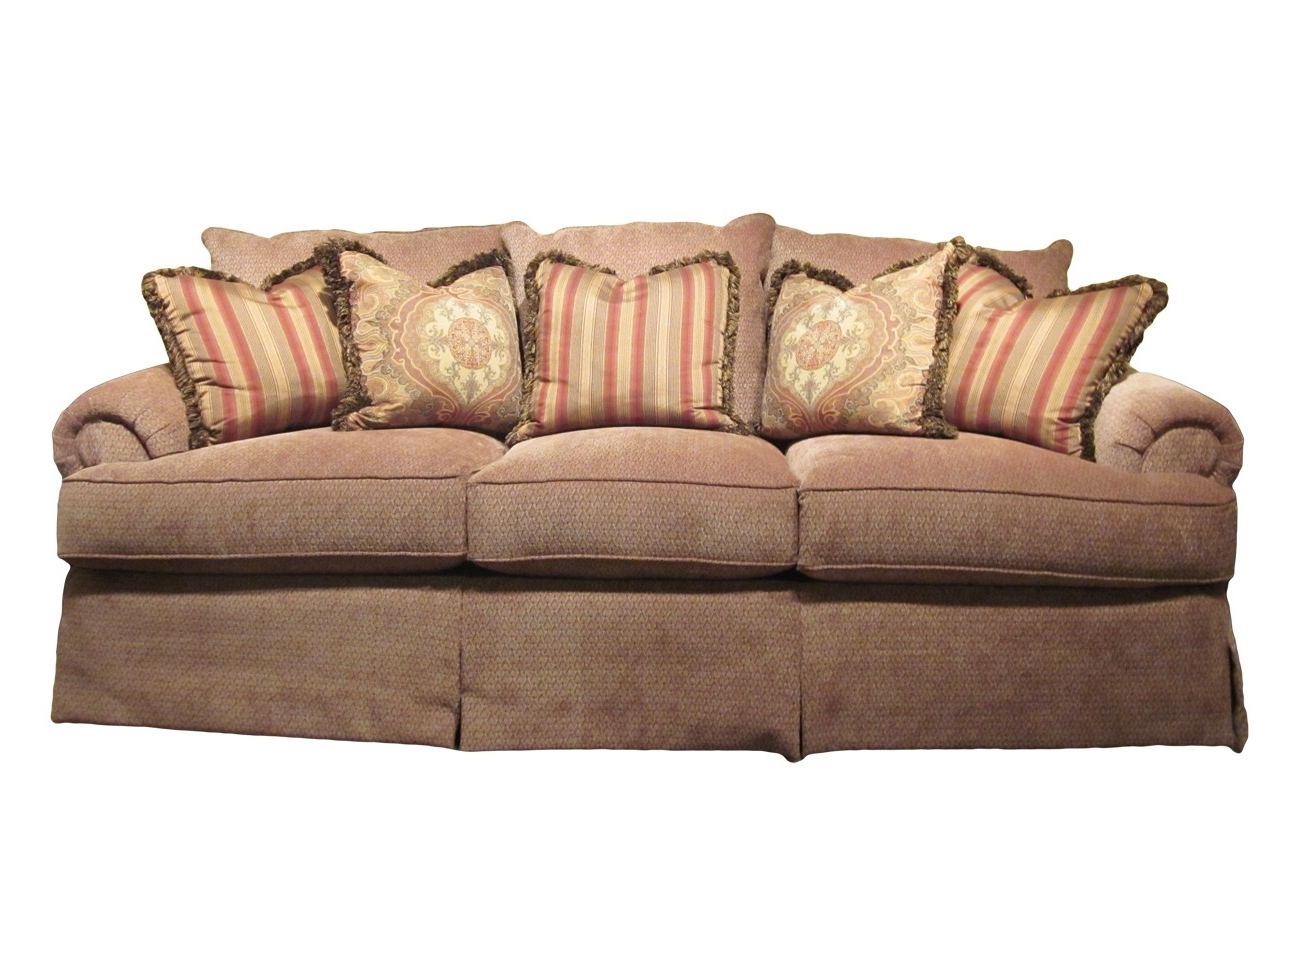 Well Liked Thomasville Sectional Sofas With Thomasville Sectional Sofas Design — Fabrizio Design (View 10 of 15)